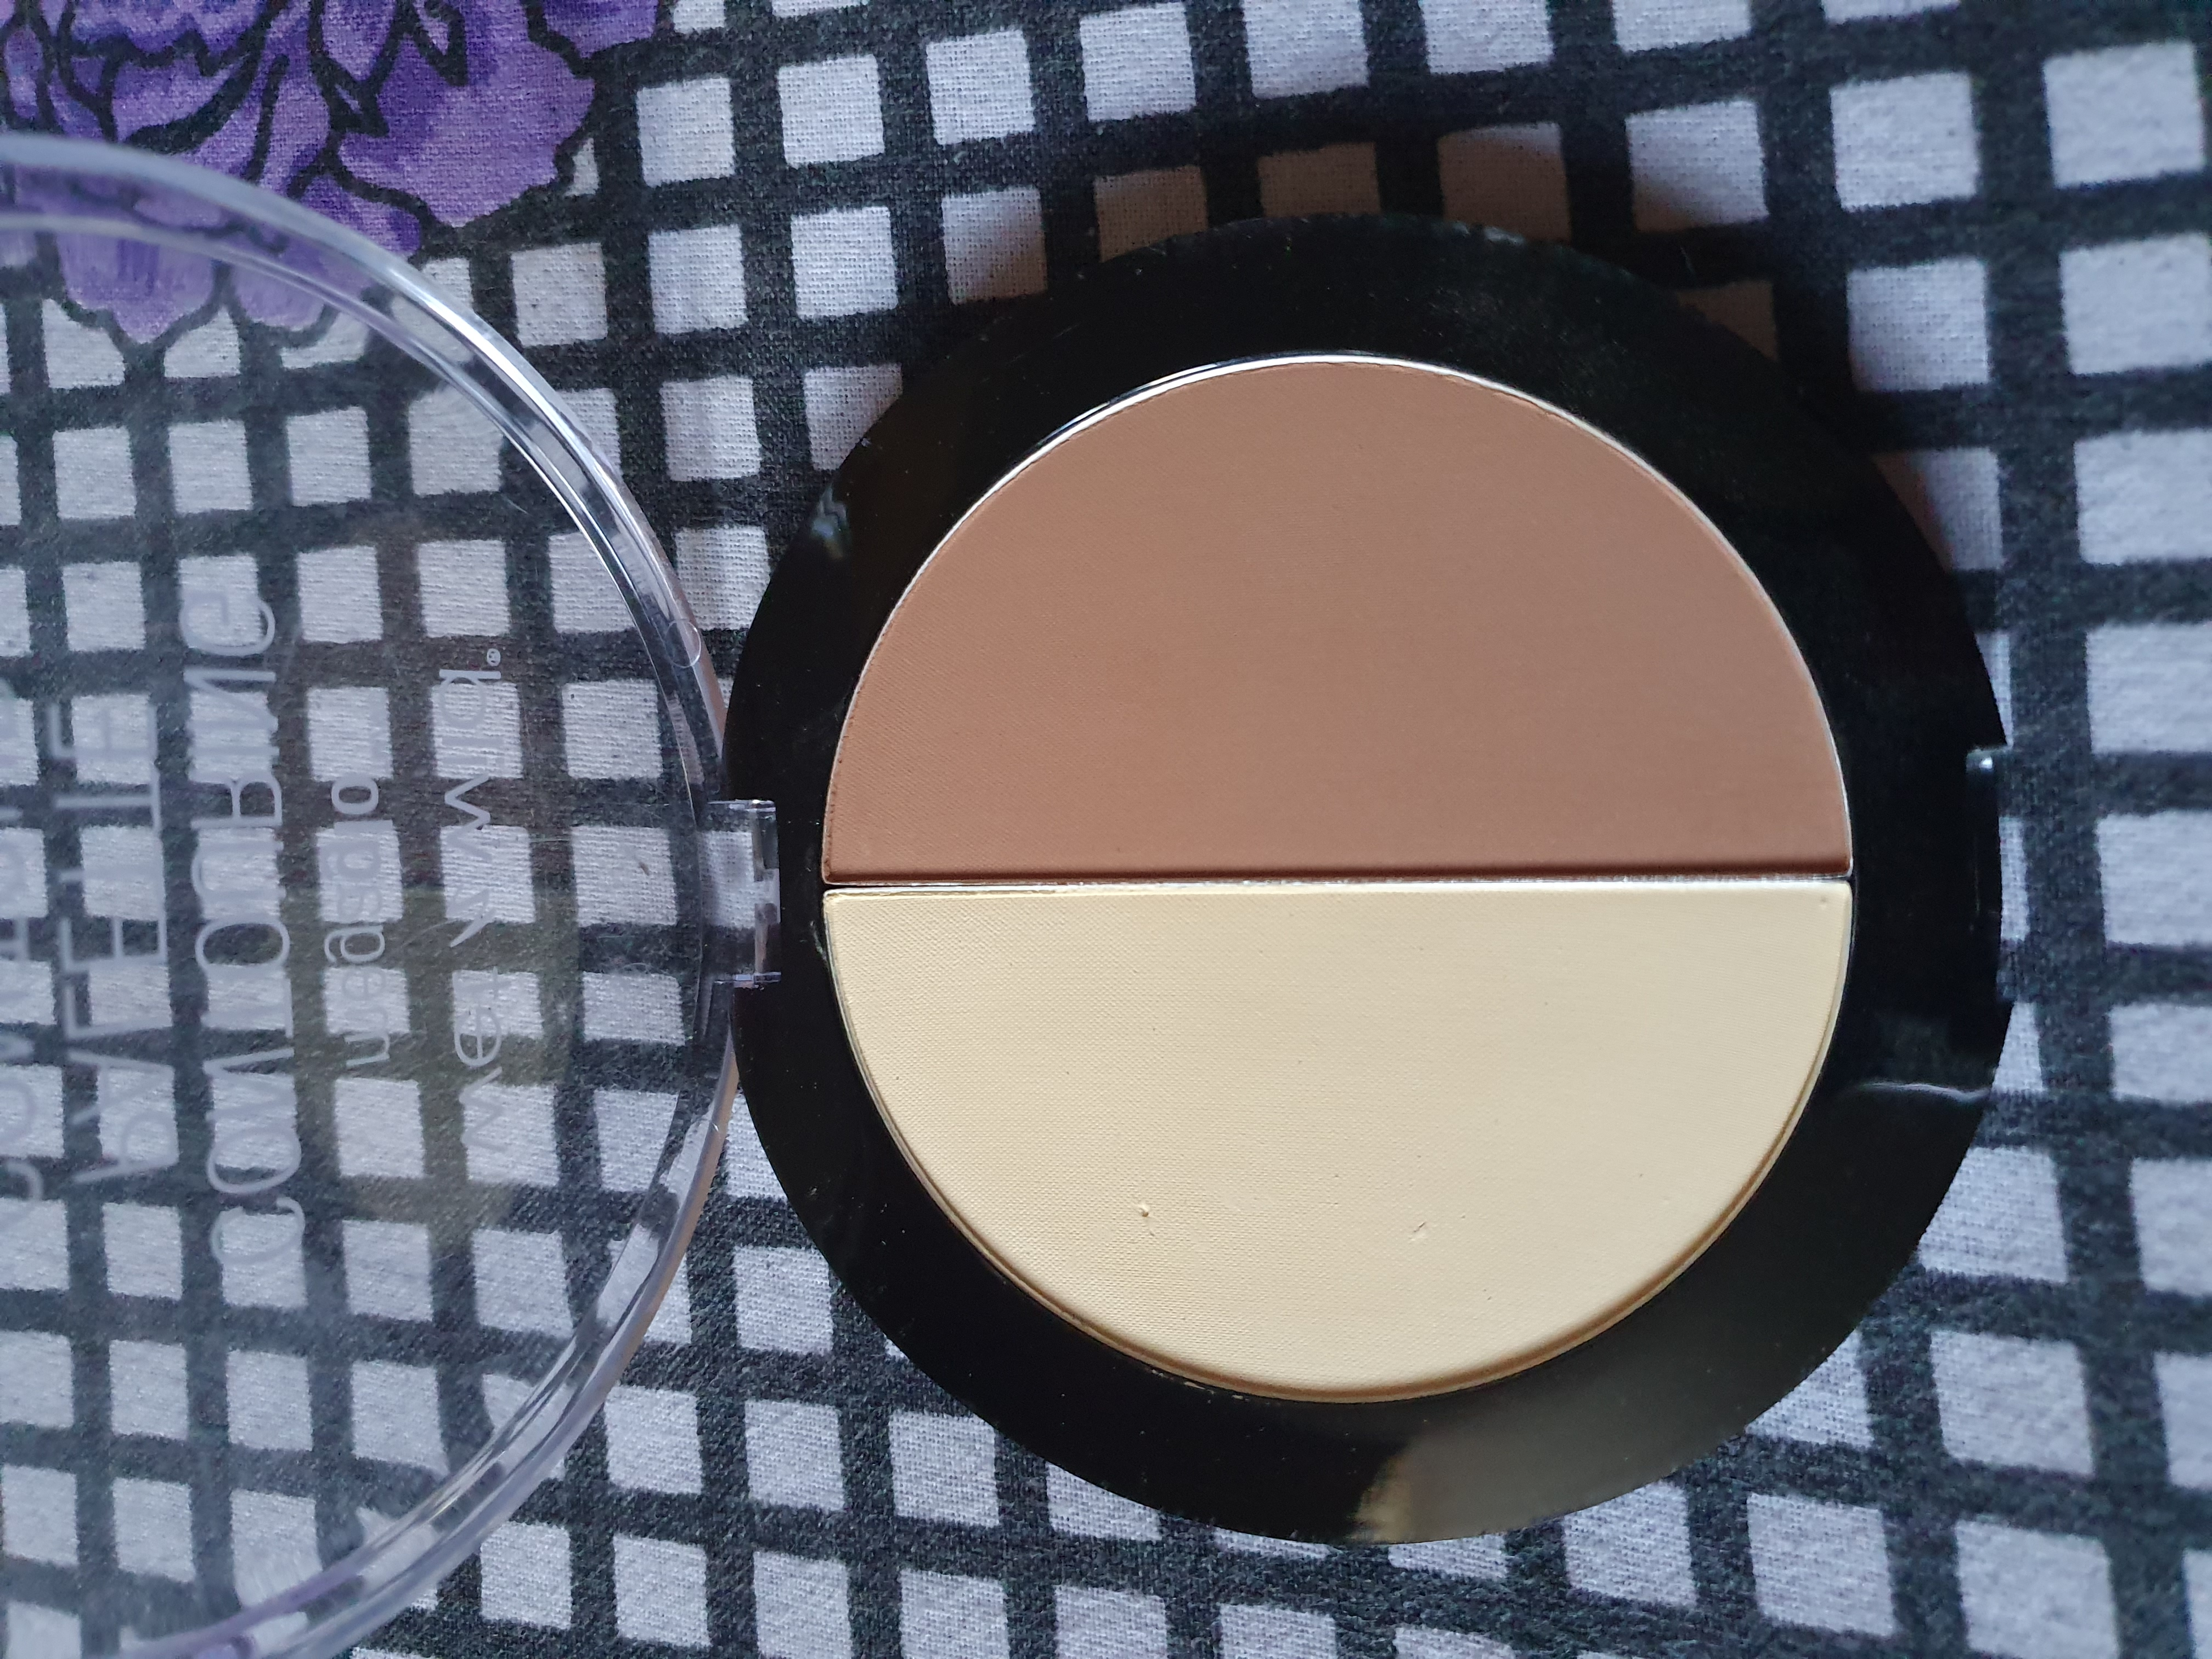 Wet n Wild MegaGlo Contouring Palette-Best pallete for beginners-By ankita_agarwal-2